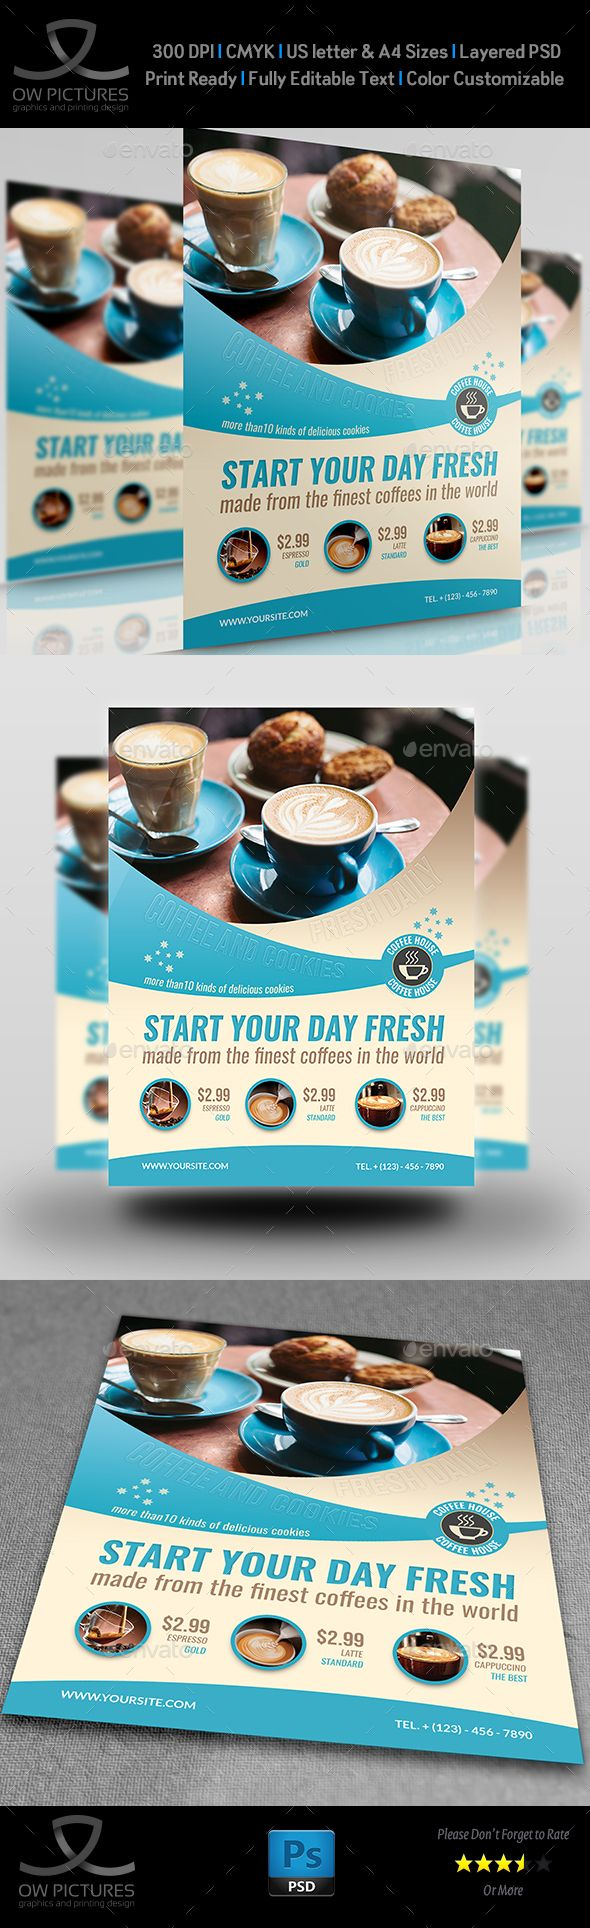 Cafe Flyer Design Template Vol.5 - Flyers Print Template PSD. Download here: https://graphicriver.net/item/cafe-flyer-vol5/19175524?ref=yinkira